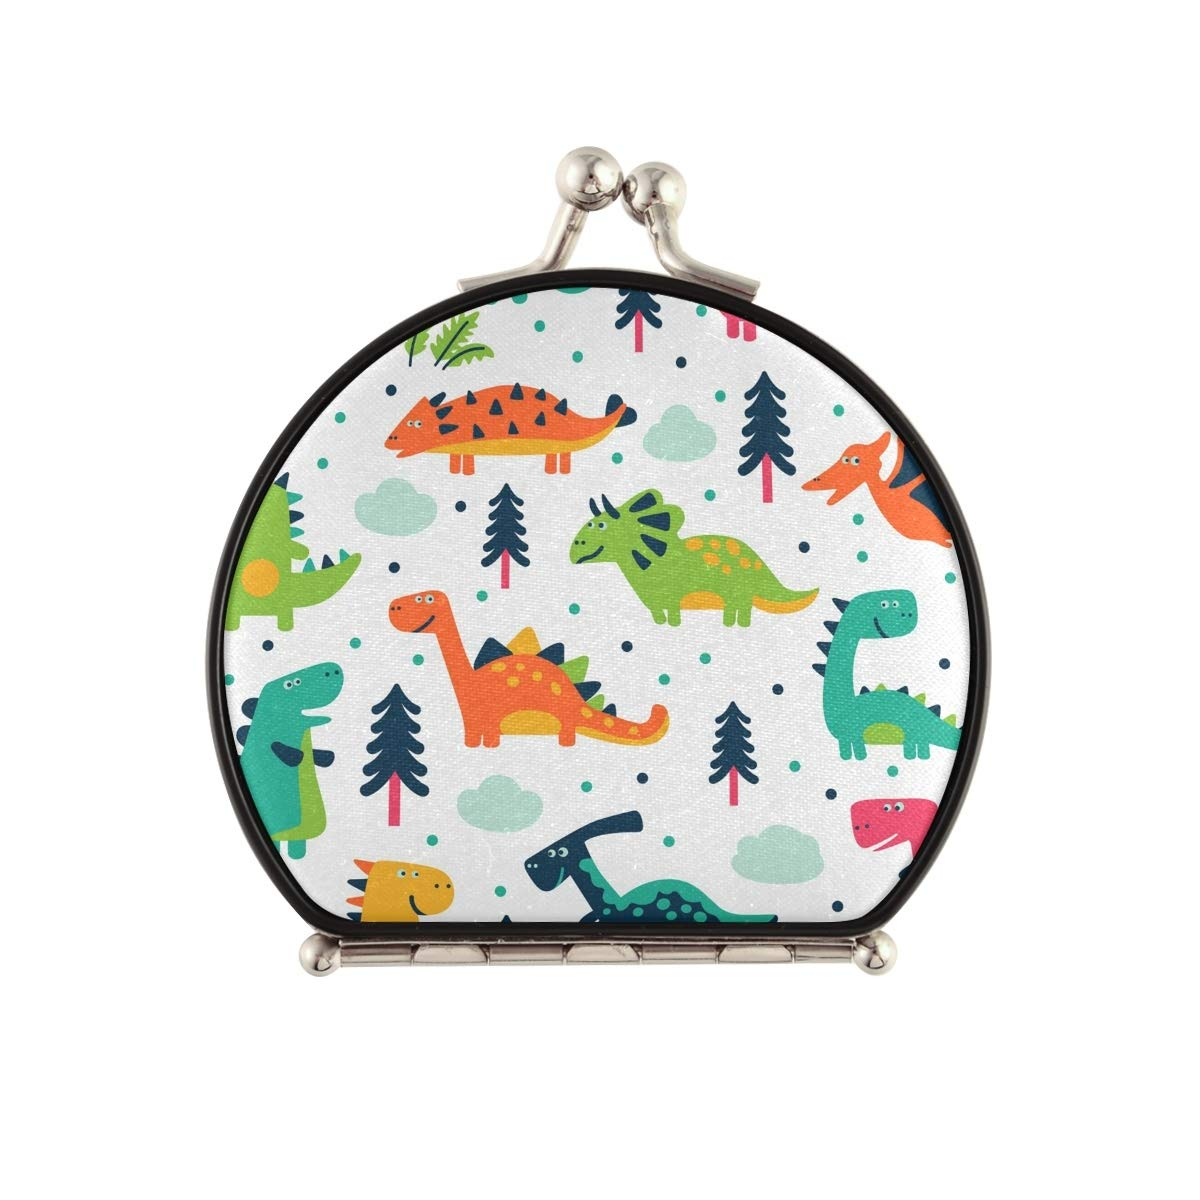 Travel Wholesale Makeup price Mirror for Women - Compact Double Dinosaur